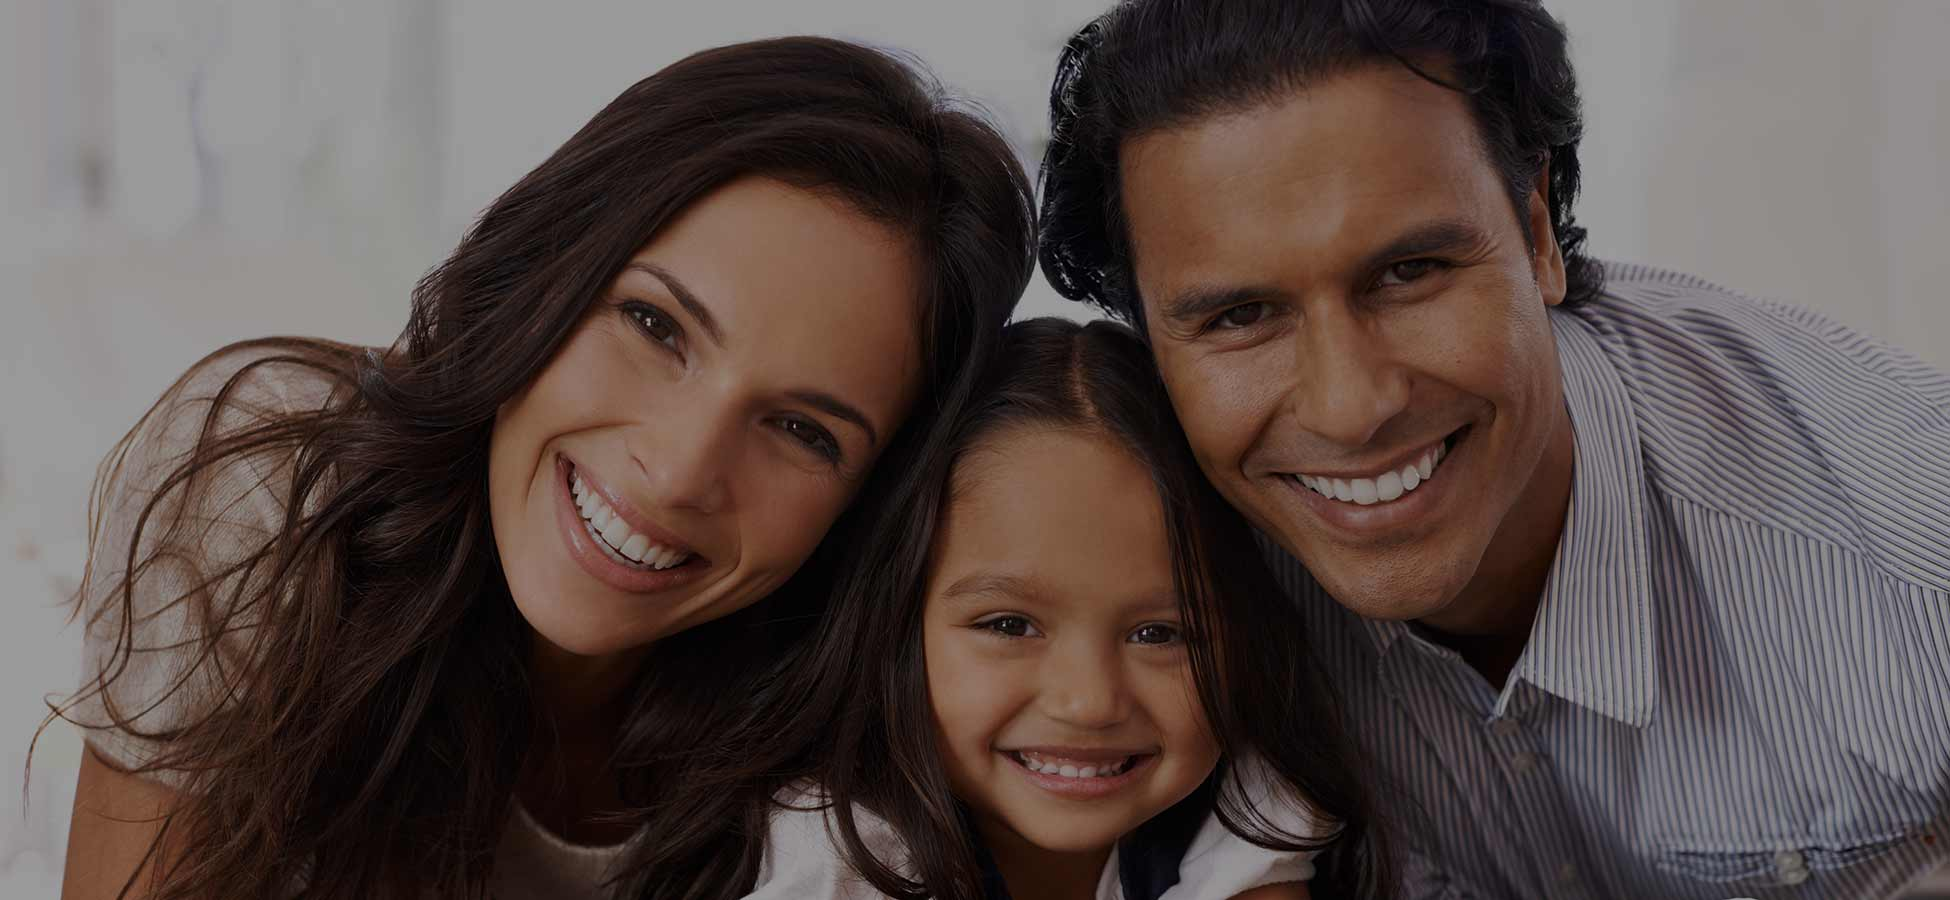 Family Dentist Chandler AZ